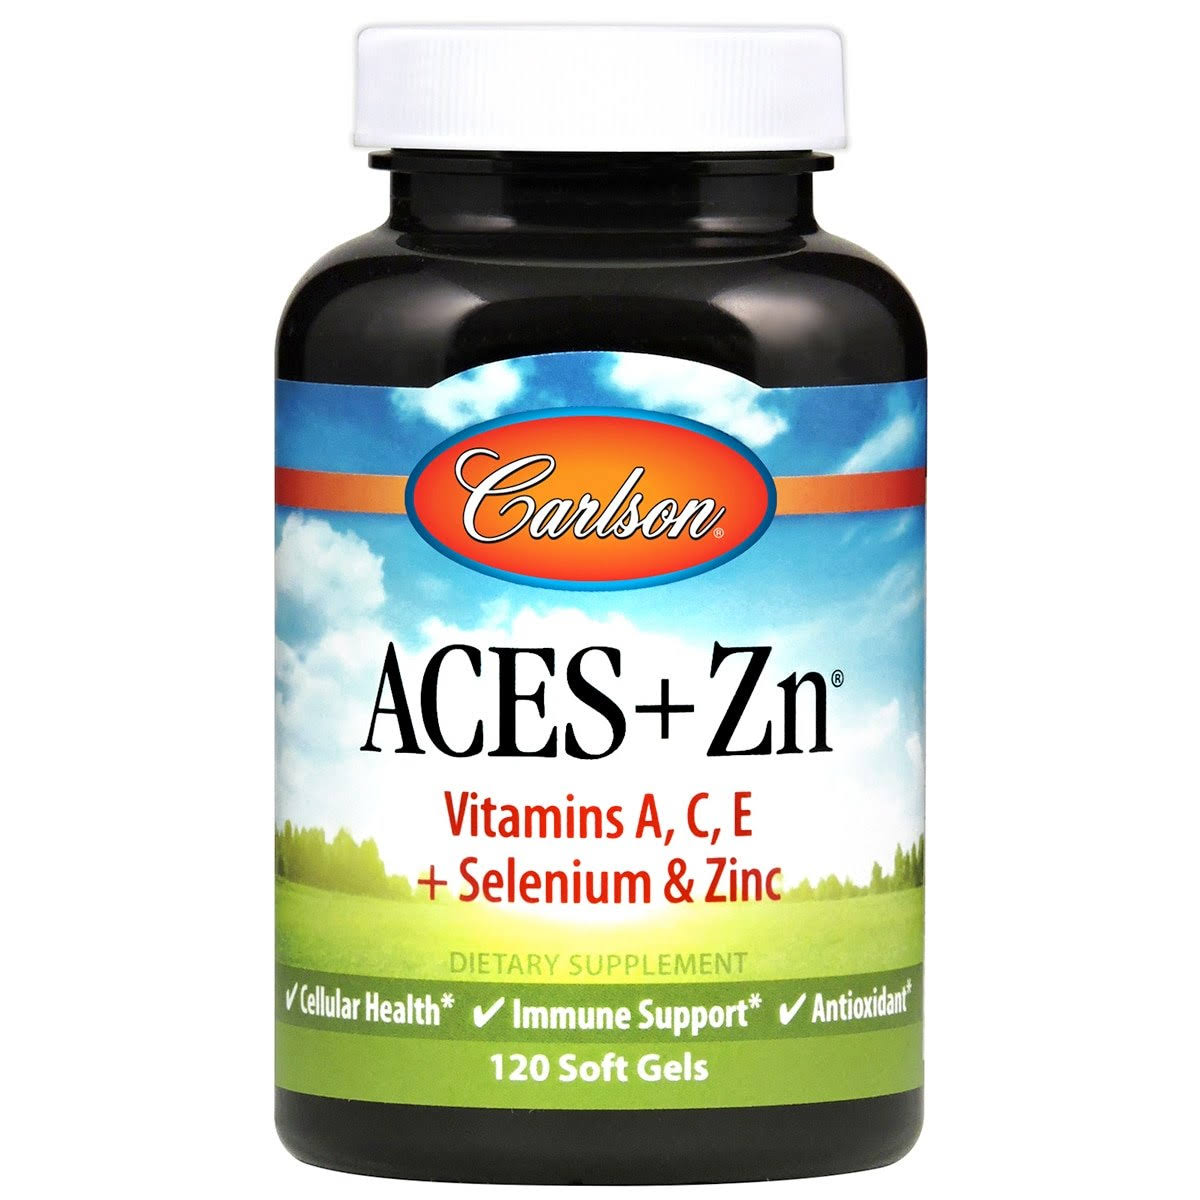 Carlson Aces + Zn Dietary Supplement - 120 Soft Gels